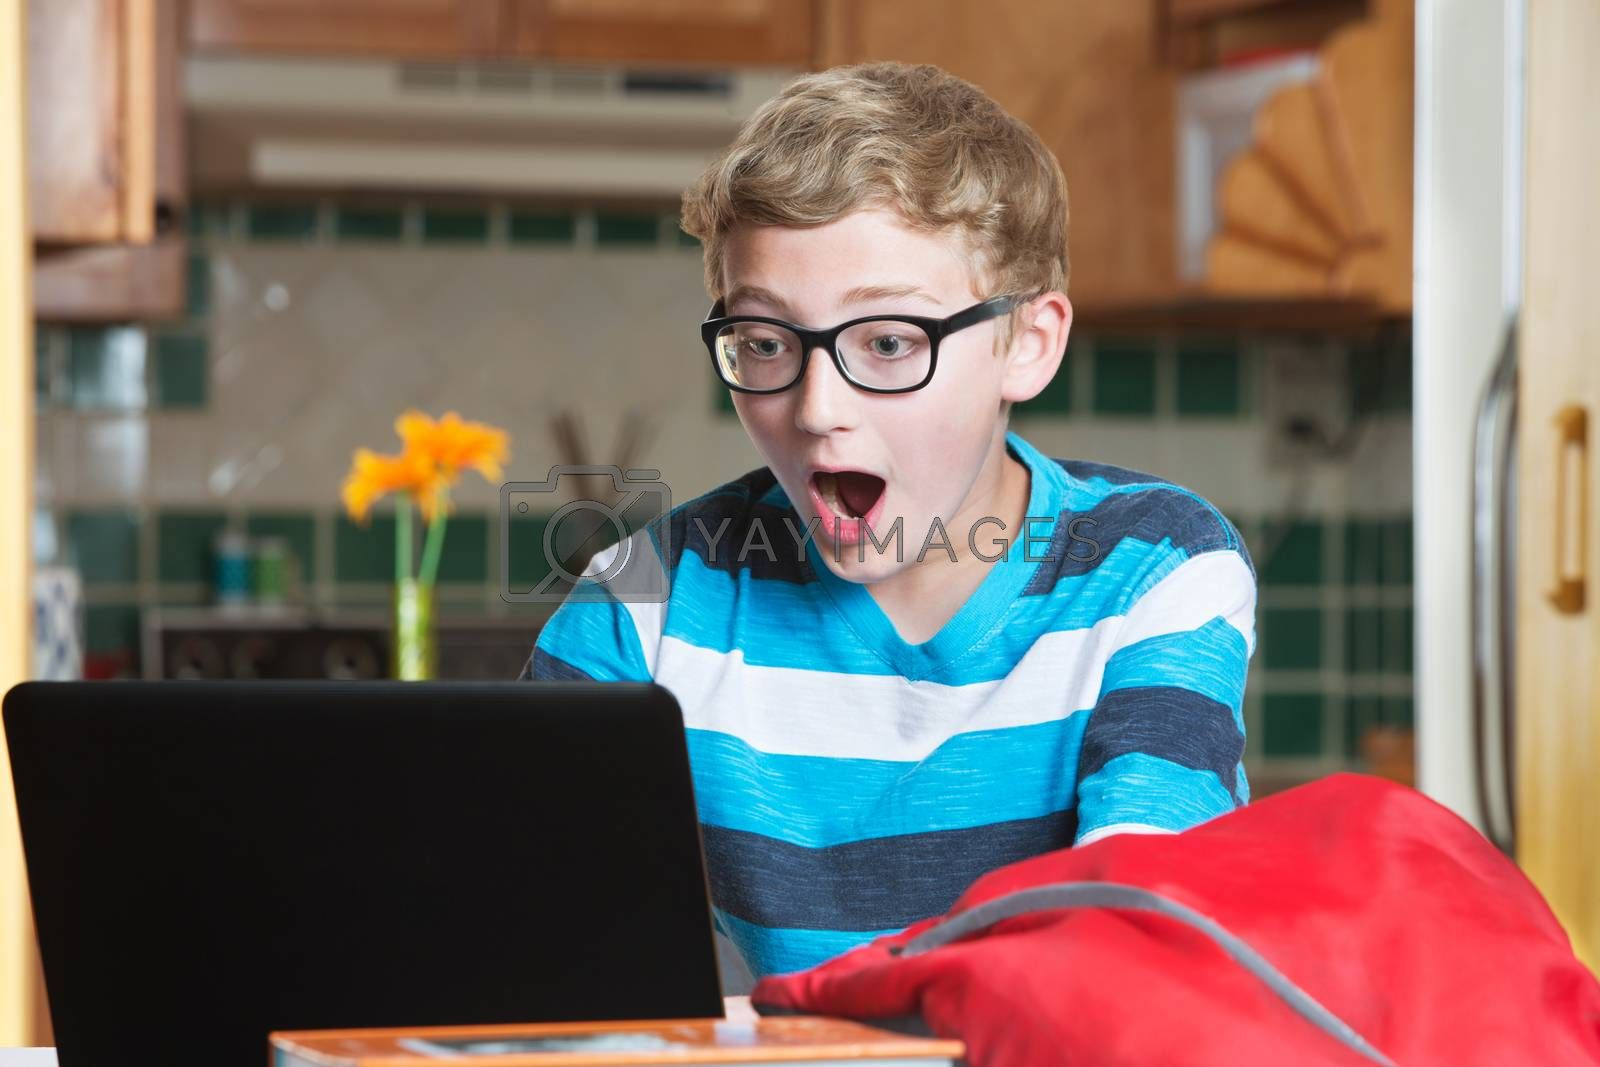 Surprised boy in eyeglasses and striped shirt using laptop with red backpack